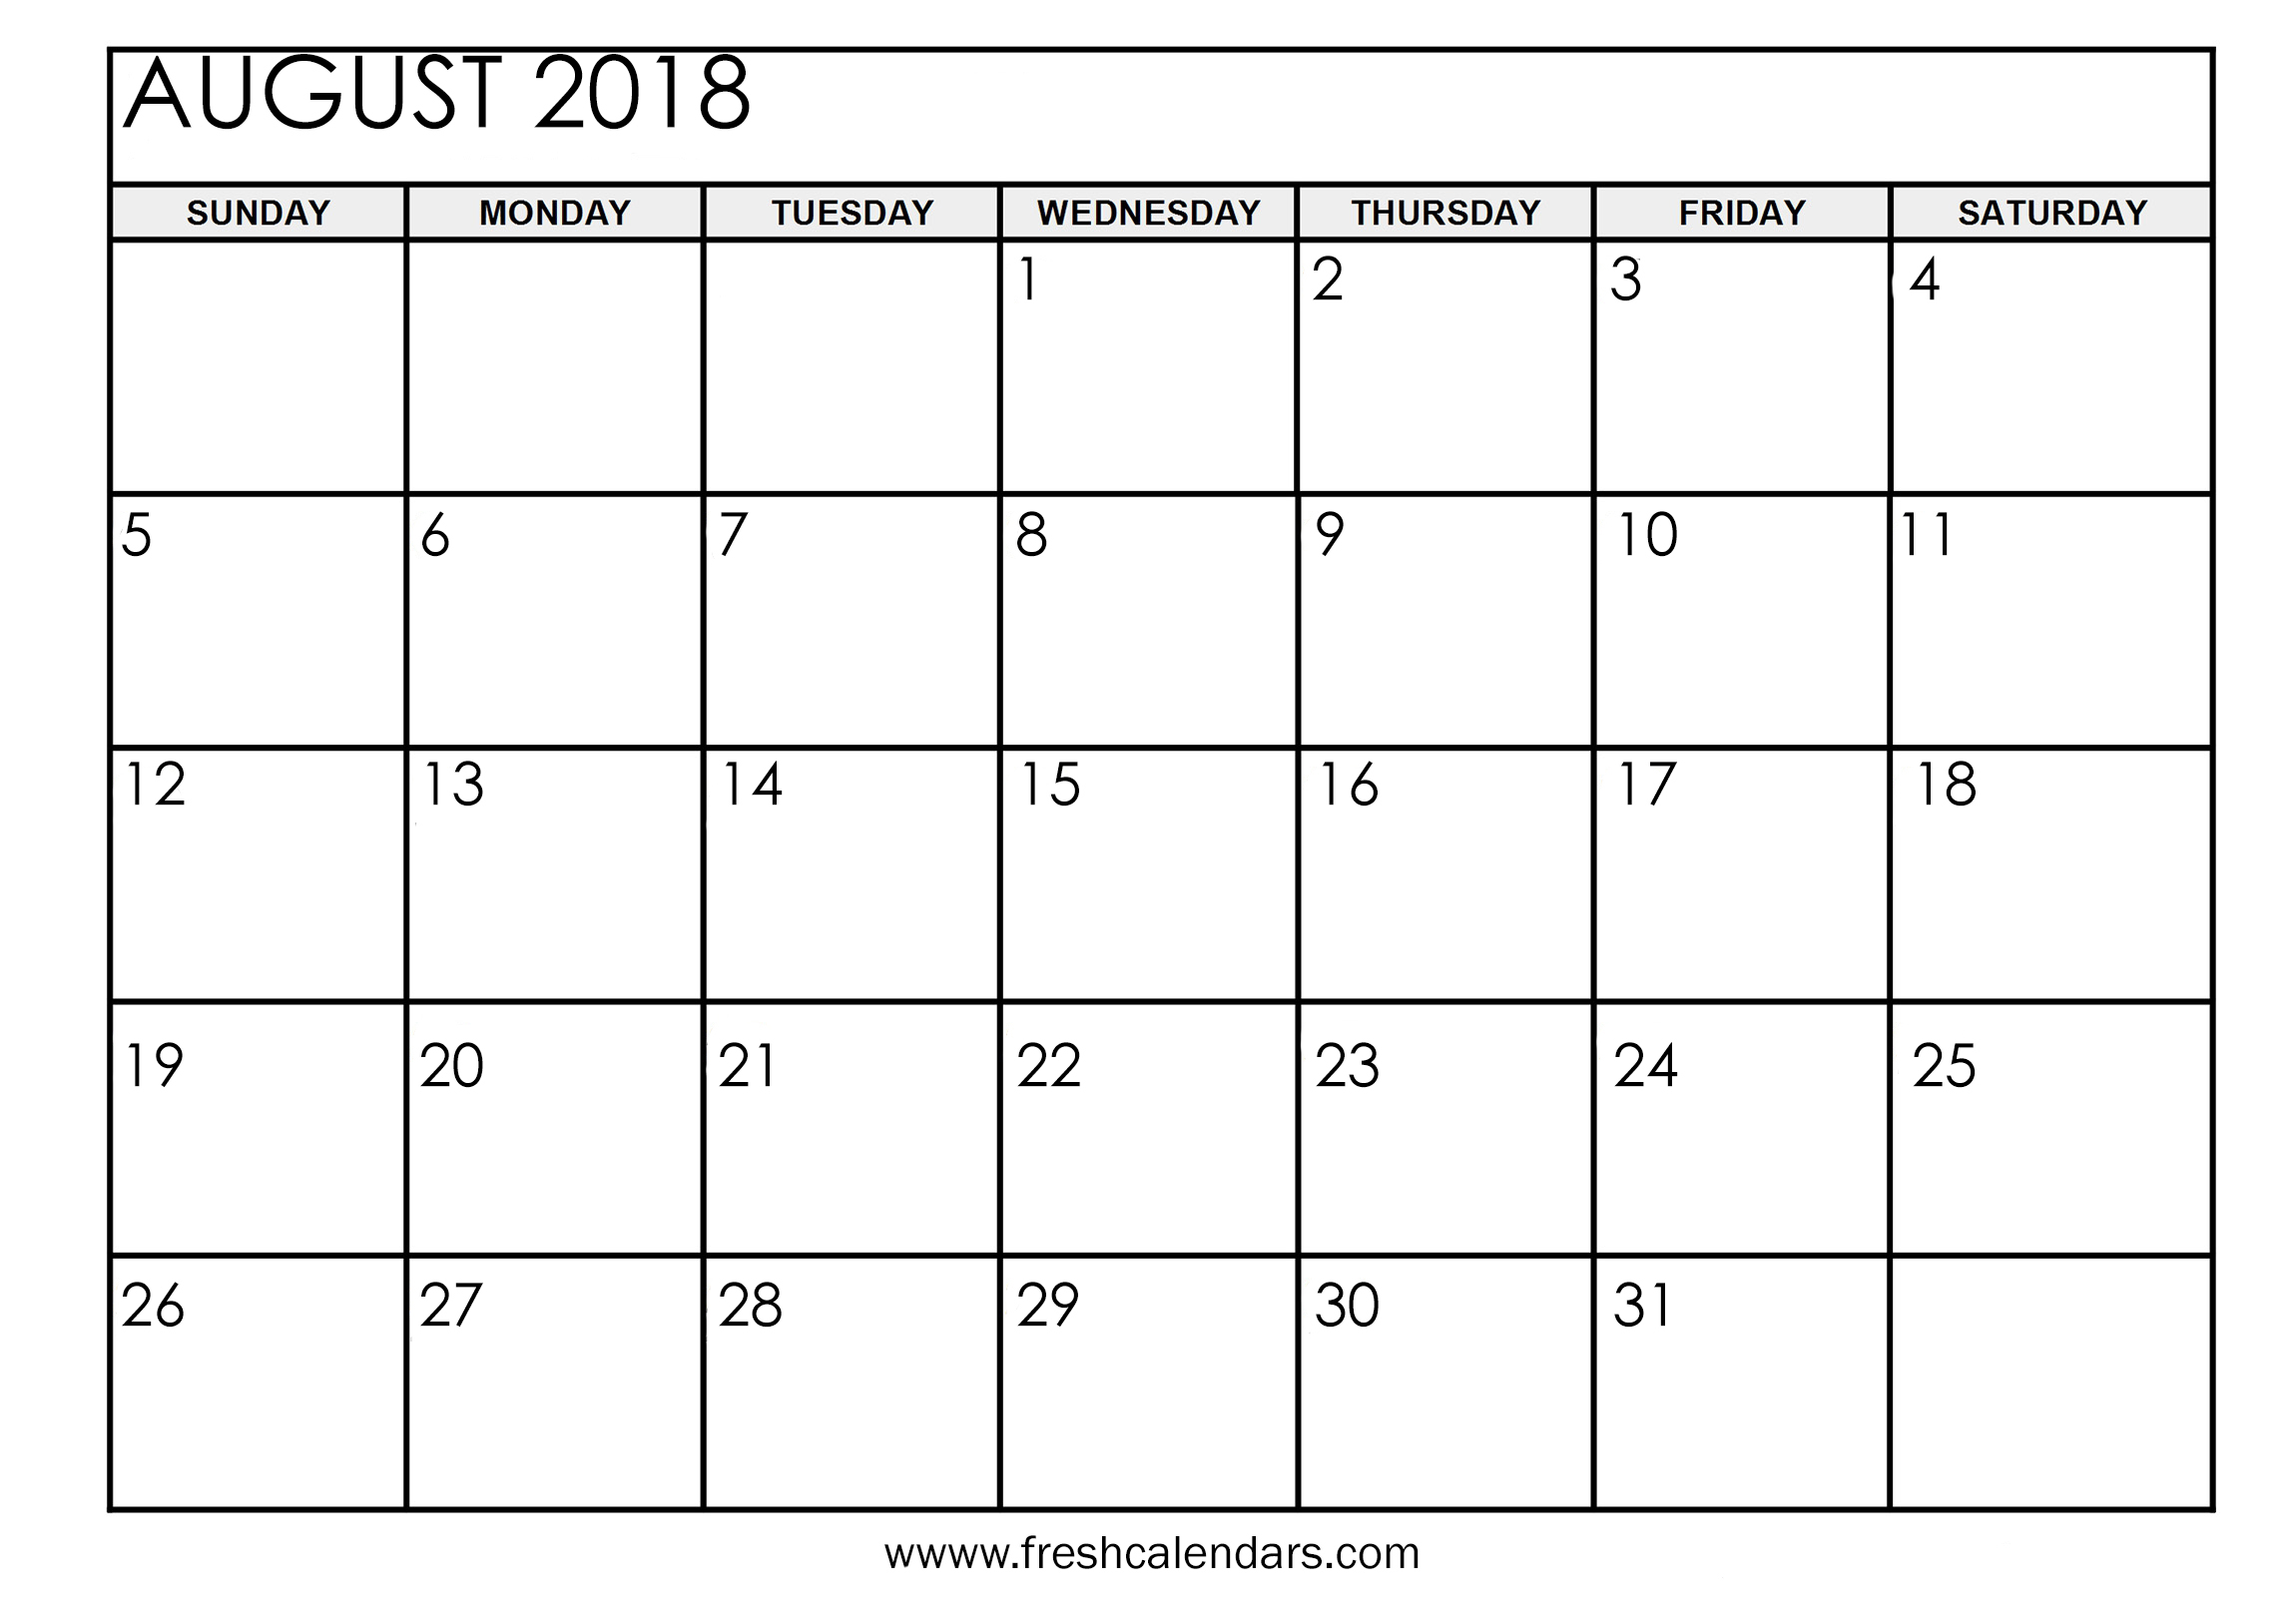 photograph regarding Printable Monthly Calendar August referred to as August 2018 Calendar Printable - Clean Calendars